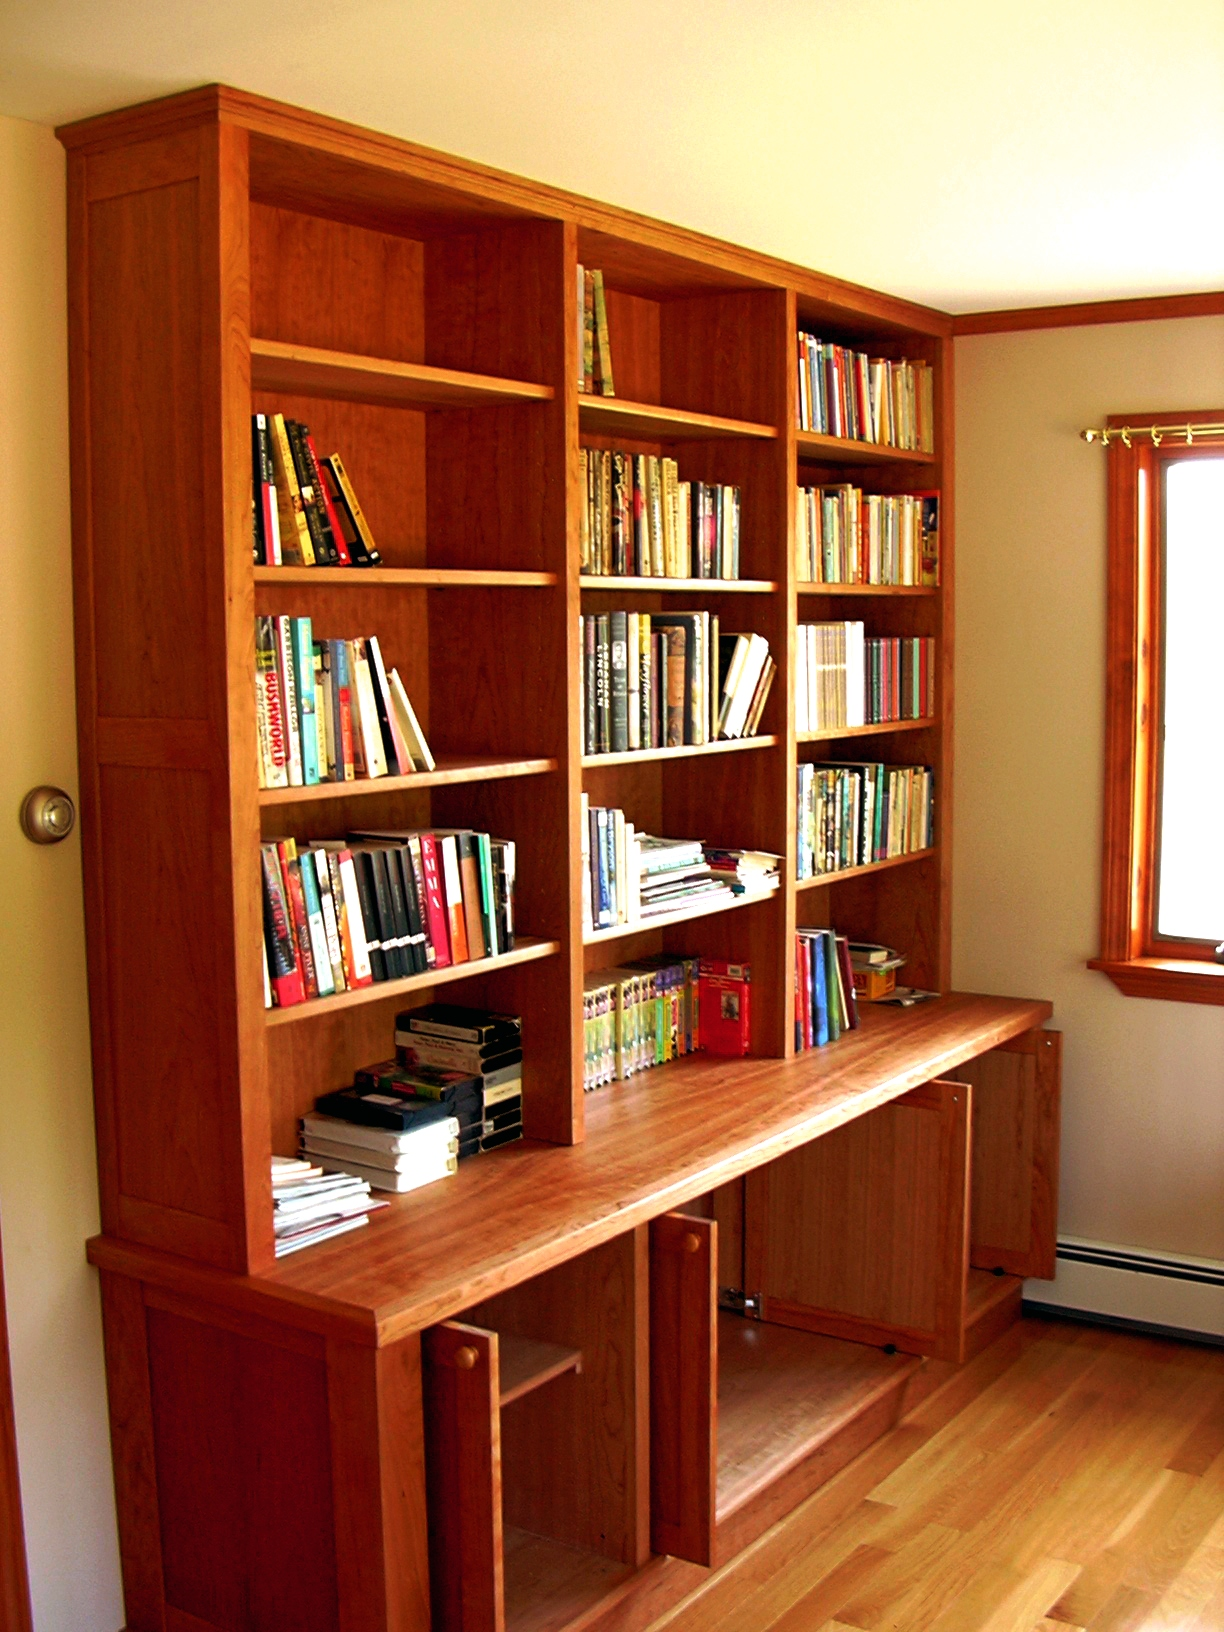 adjusted walkerspond bookcase.jpg